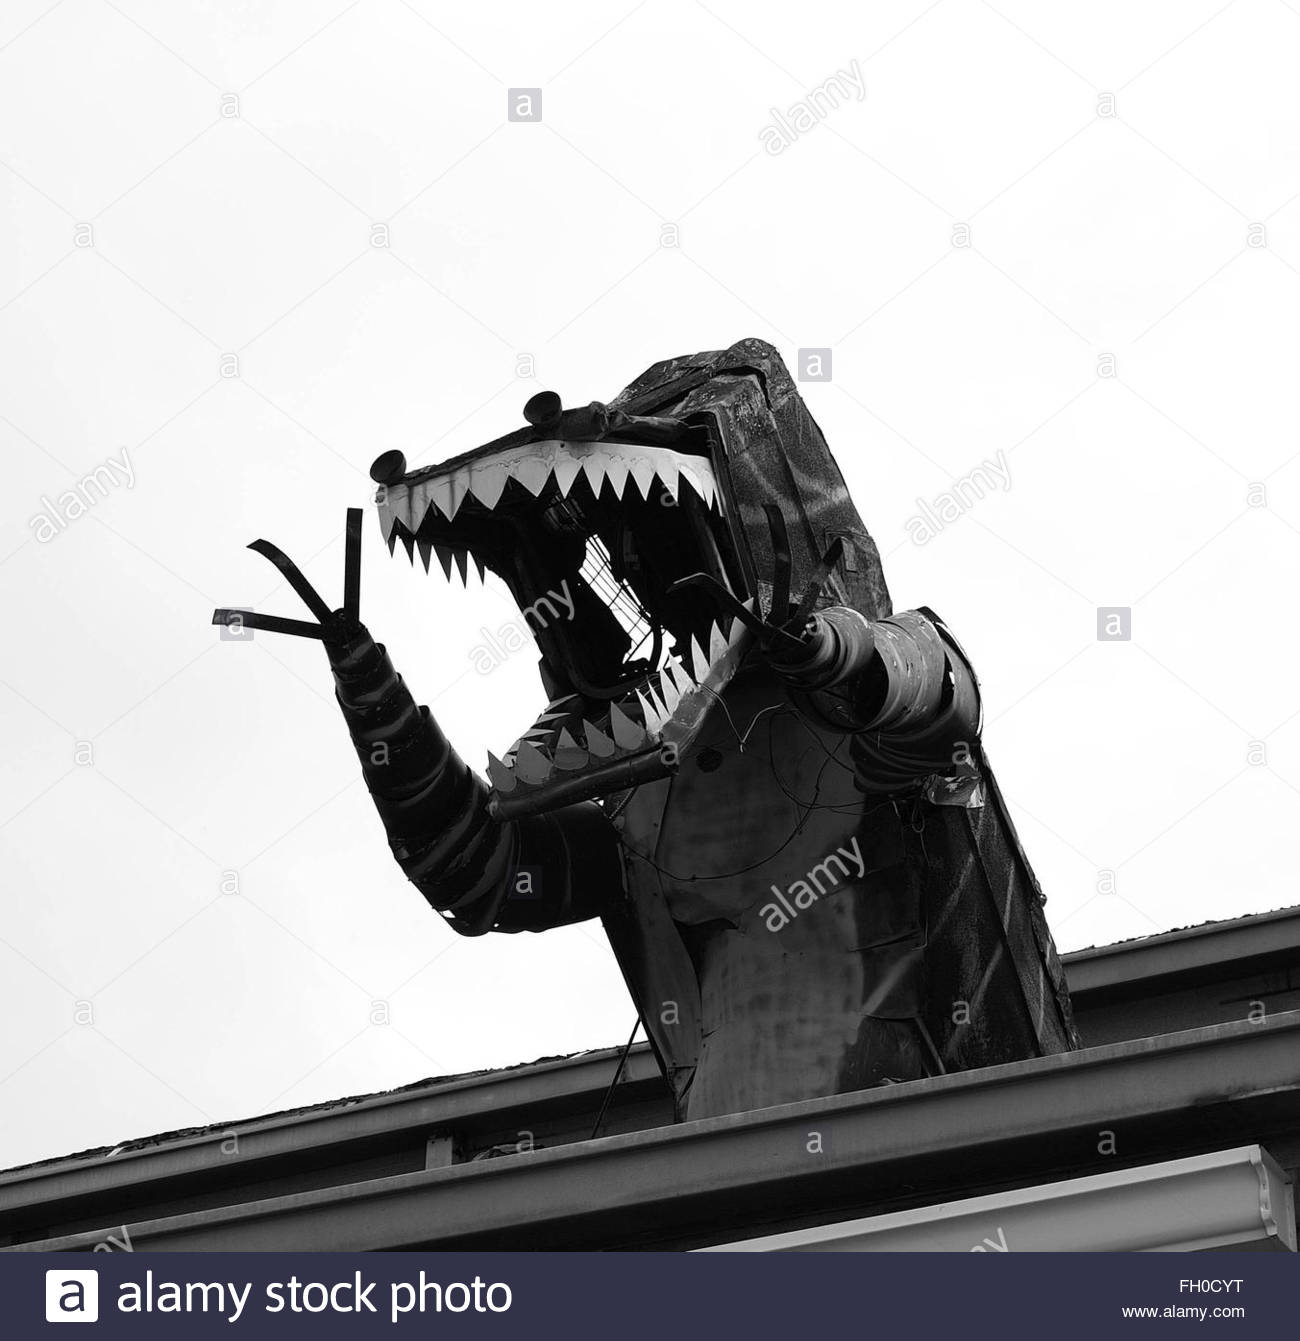 A tin model of a dinosaur or monster - Stock Image